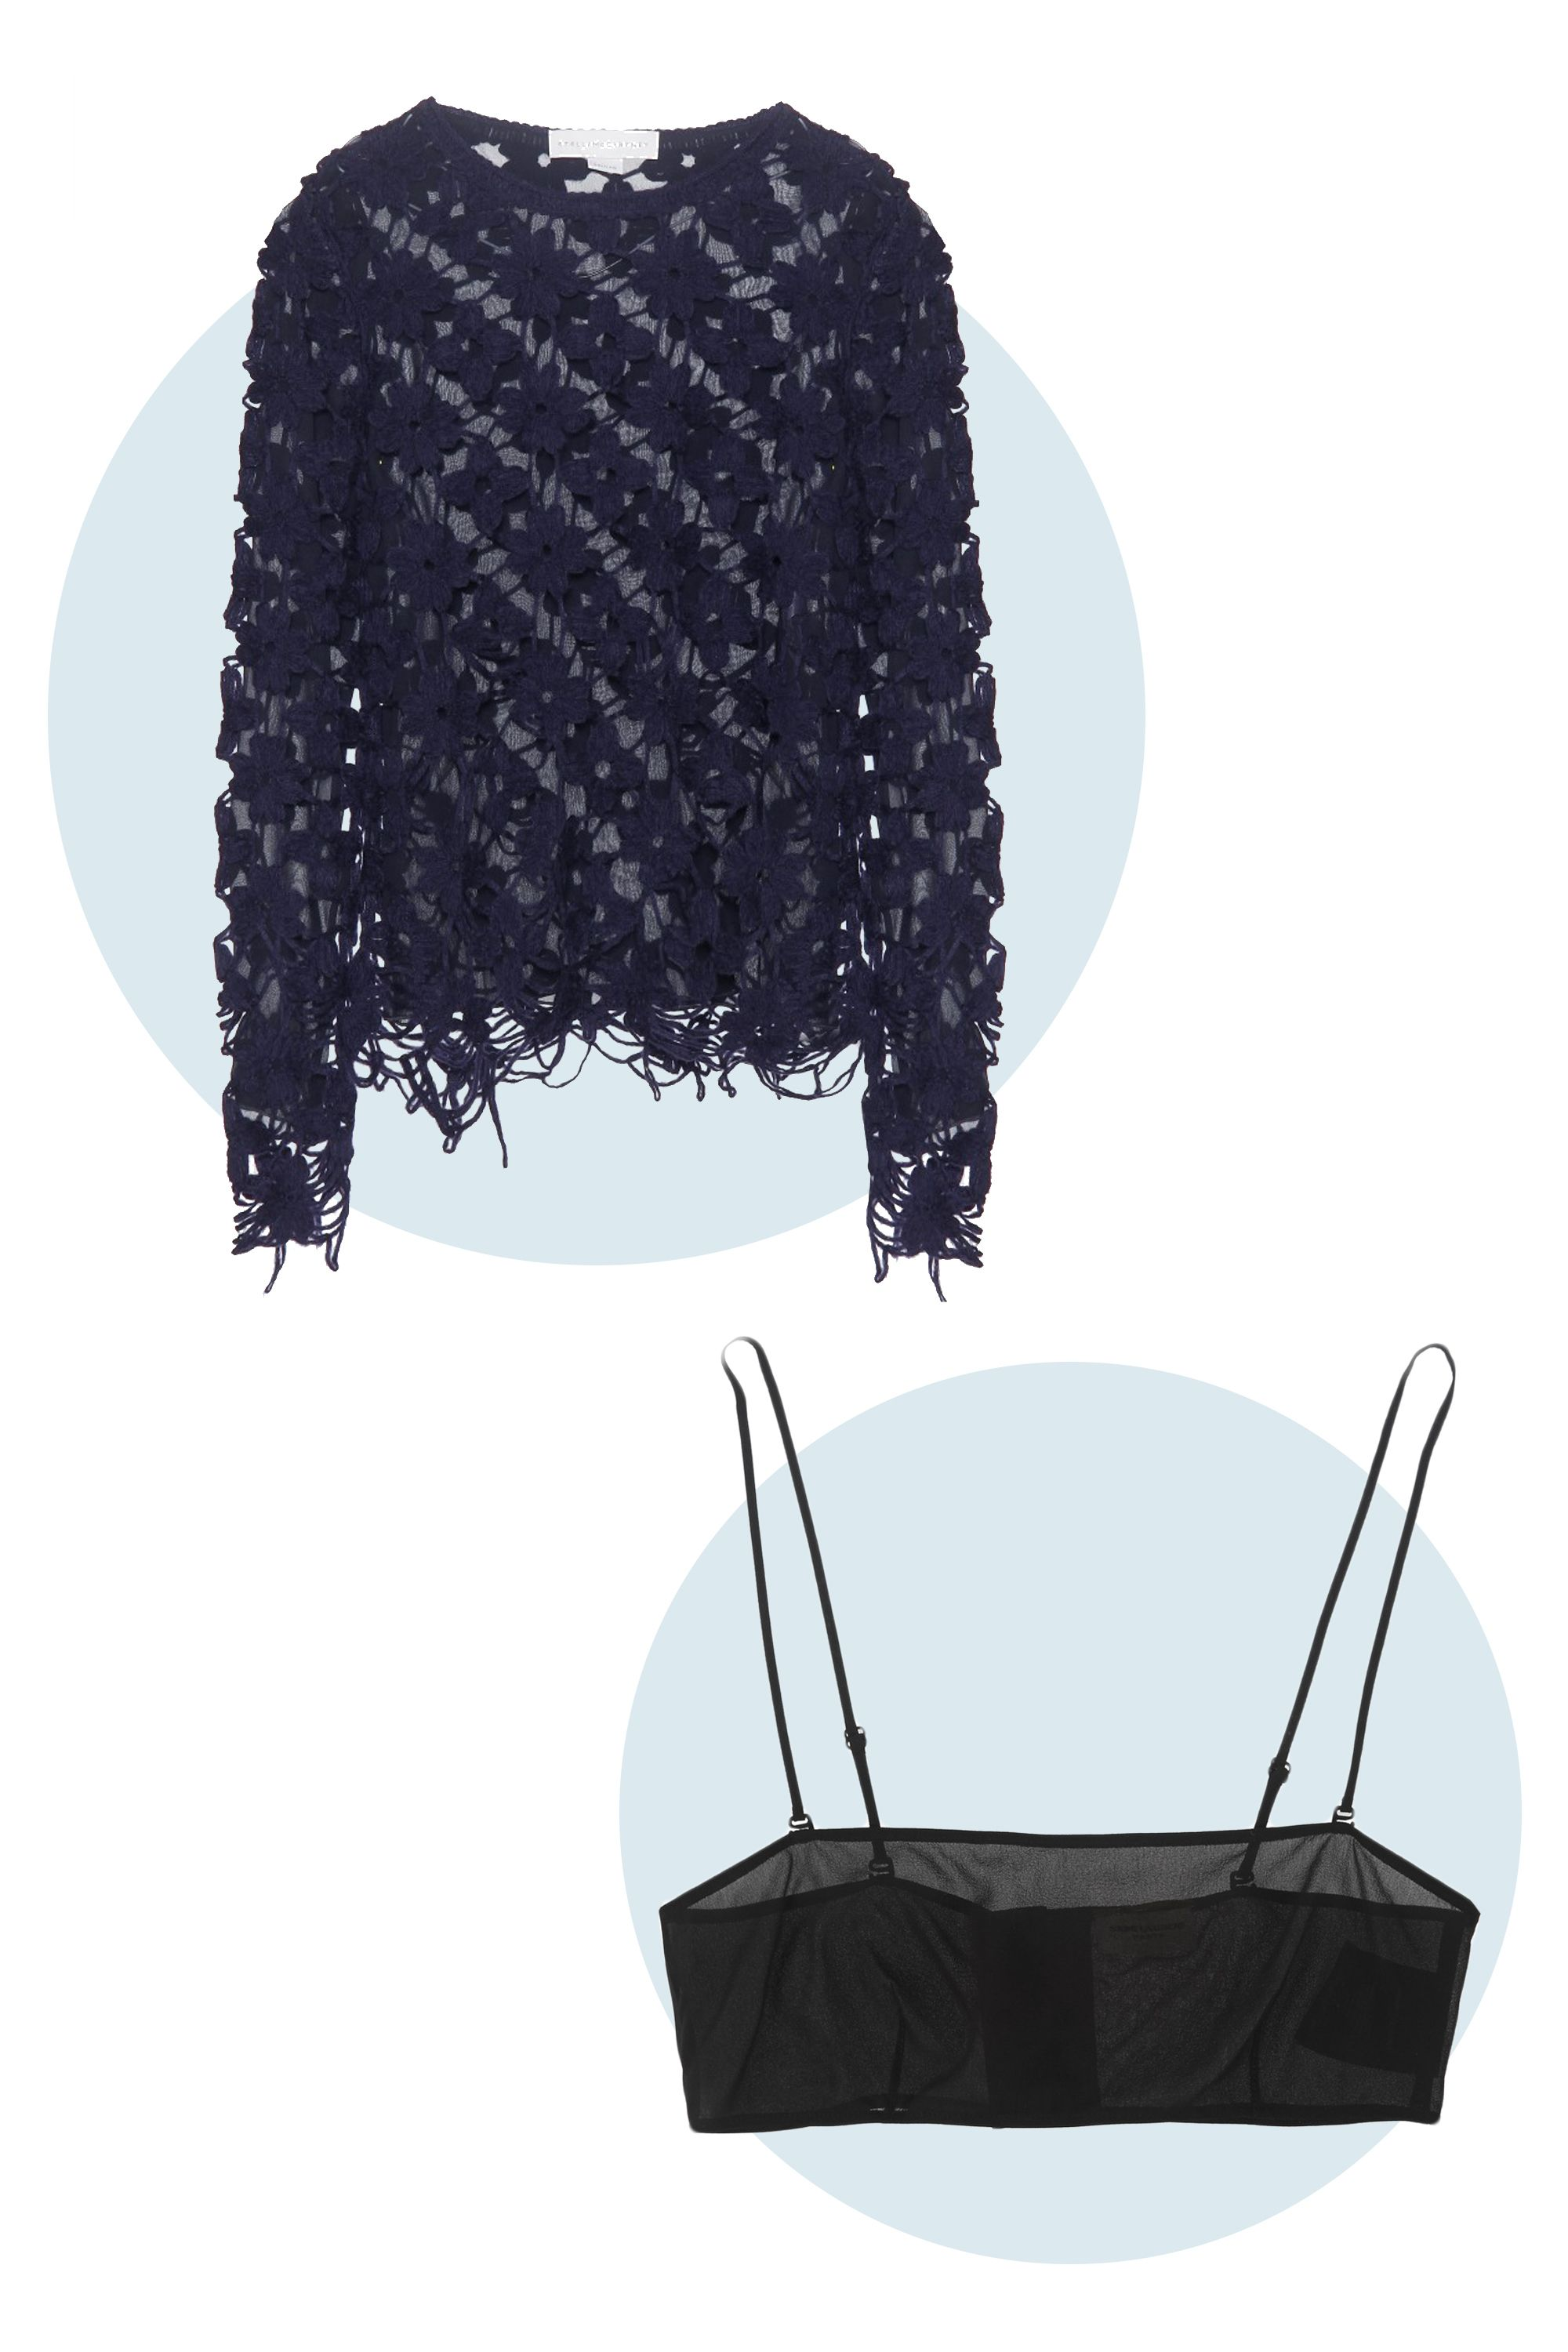 """<p>This open floral design is an airy departure from super-chunky knits, and deconstructed edges give it a cool edge. The clean lines of the bra are sleek and understated beneath the sweater's intricate weave. </p><p>Stella McCartney Floral Macramé Sweater, $1,720; <a href=""""http://www.mytheresa.com/en-us/mytheresa-com-exclusive-floral-macrame-sweater.html?utm_source=affiliate&utm_medium=polyvore.us"""" target=""""_blank"""">MyTheresa.com</a> </p><p>Saint Laurent Stretch-Silk Georgette Bandeau Bra, $690; <a href=""""http://www.net-a-porter.com/us/en/product/471916"""" target=""""_blank"""">Net-a-Porter.com</a></p>"""